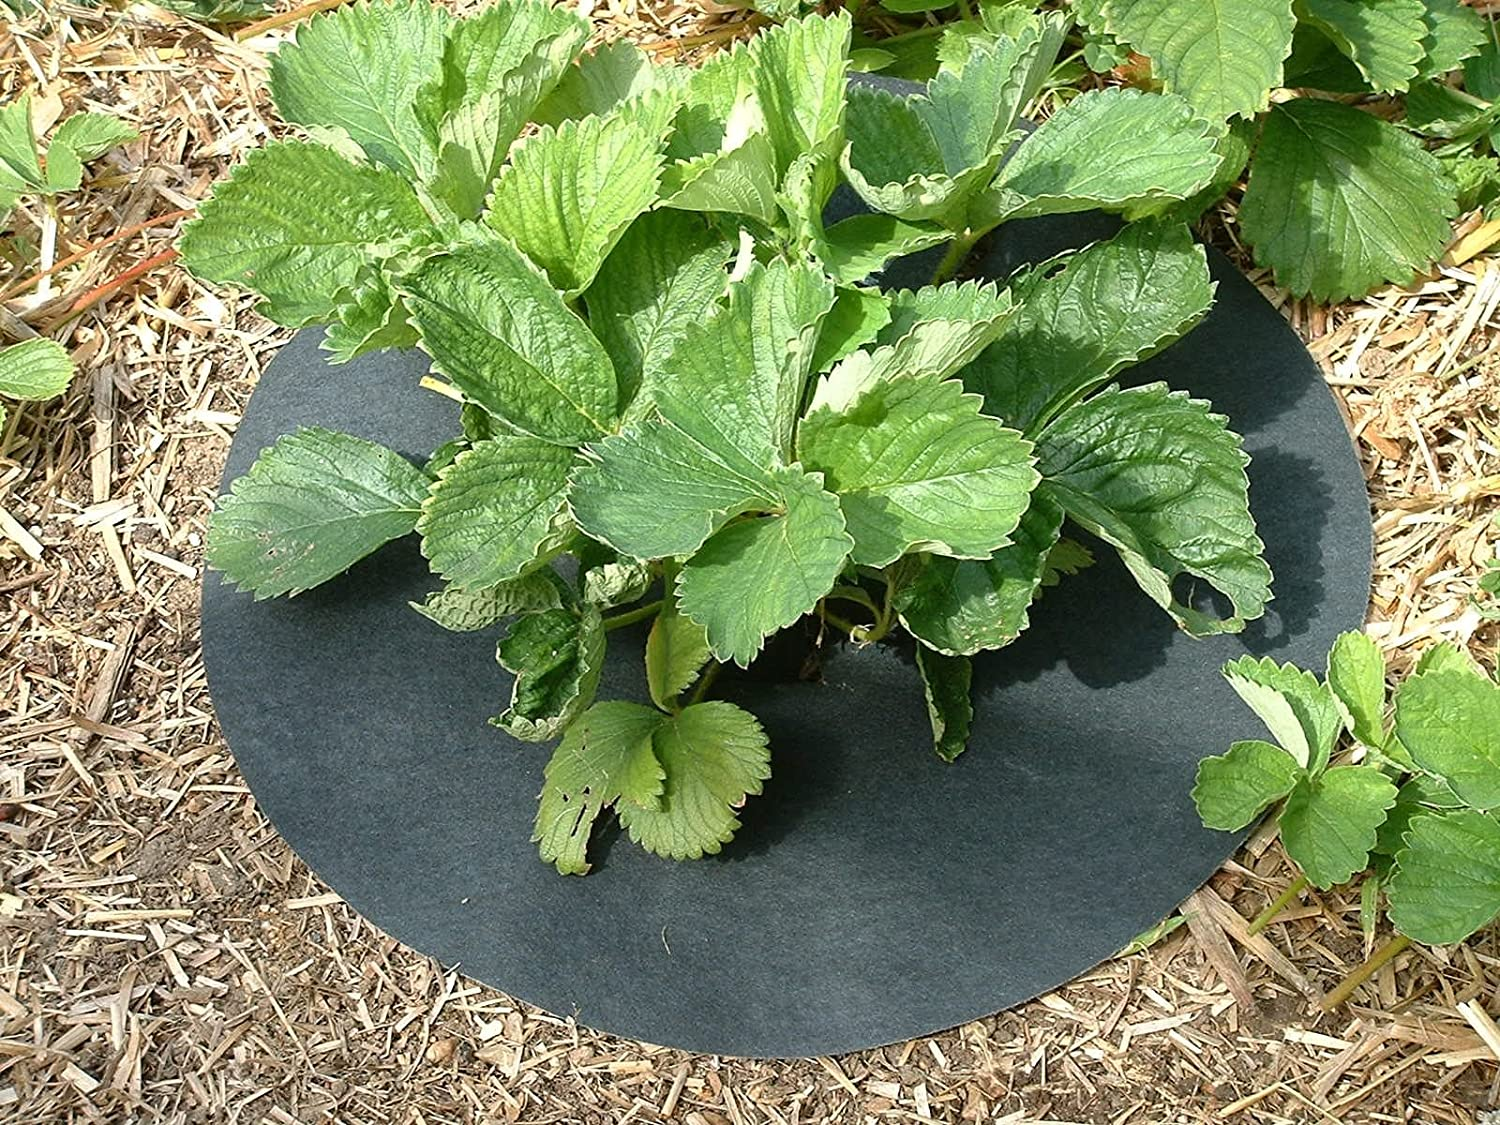 Gardening-Naturally Copper Impregnated Strawberry Mats - Keep Slugs & Snails away from plants. 15